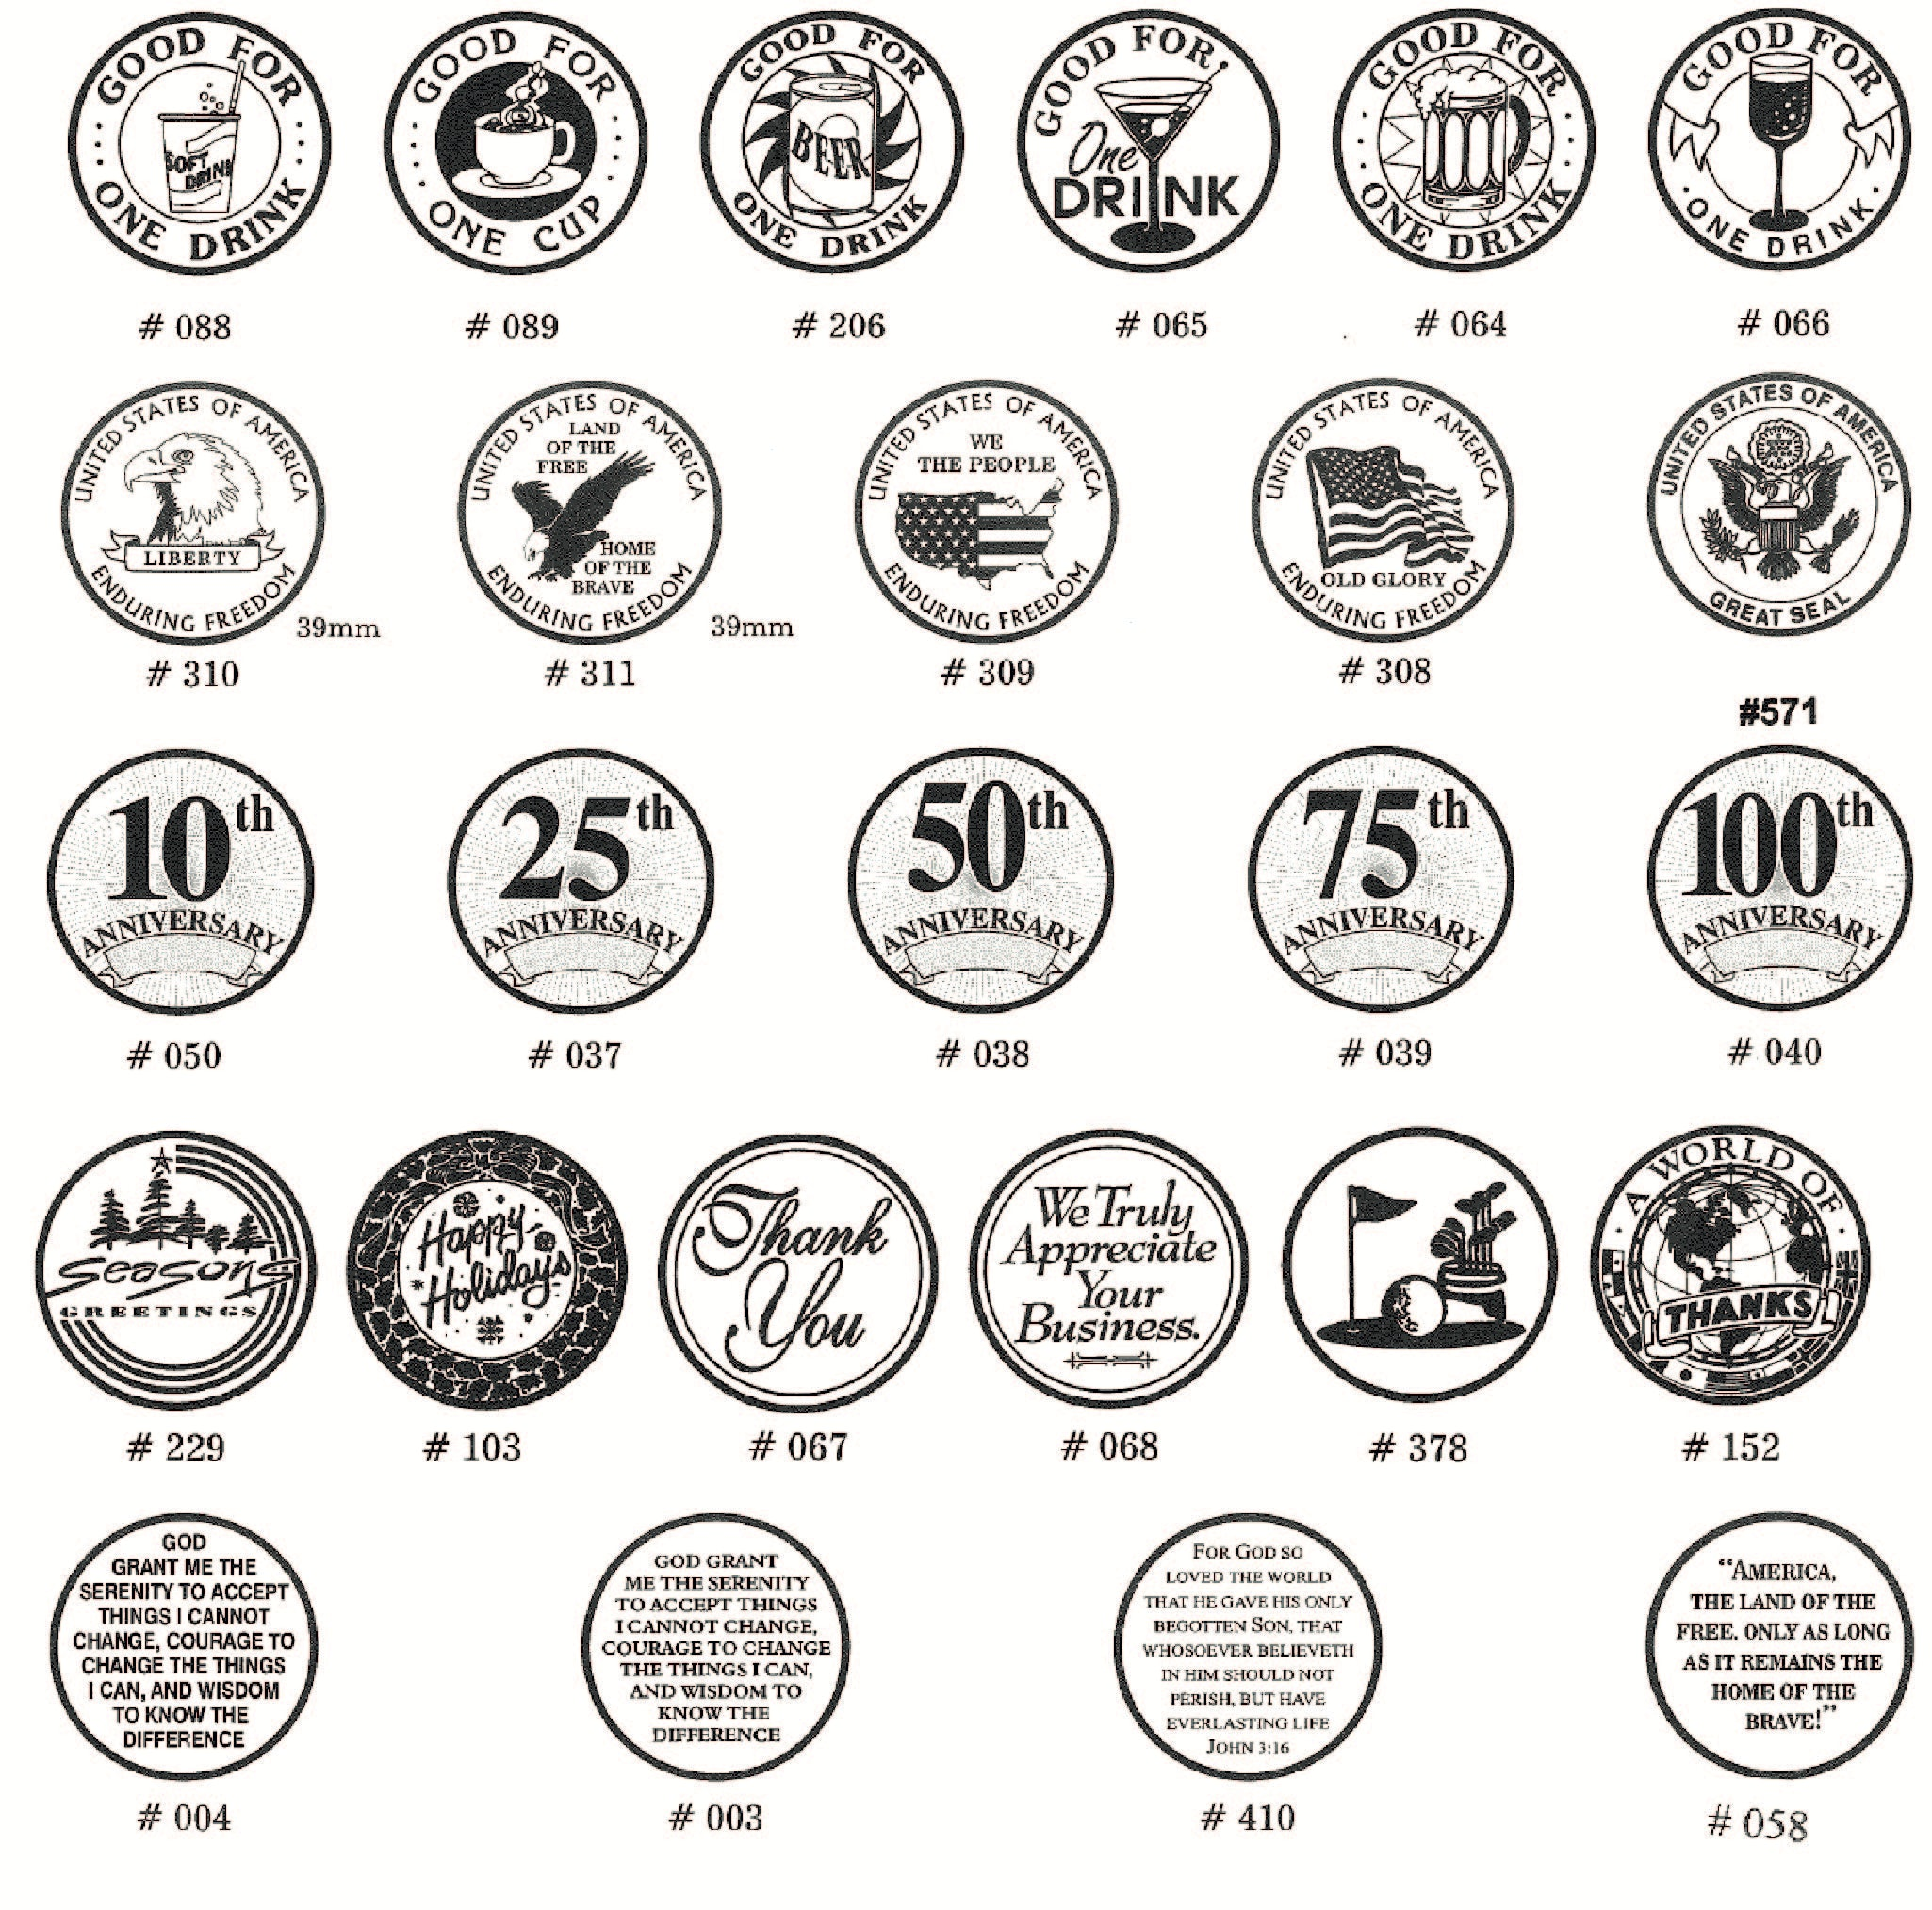 http://files.b-token.us/files/380/original/Aluminium tokens standard designs.jpg?1568622965